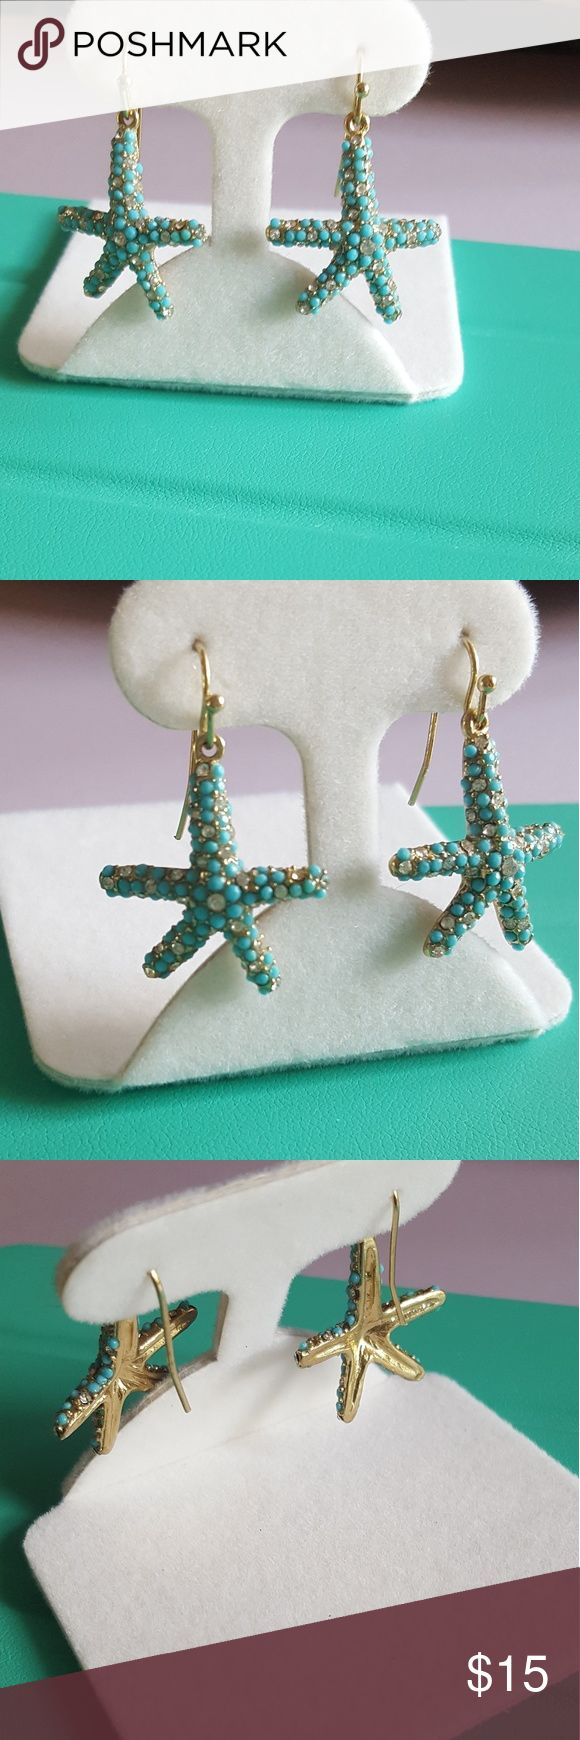 Pool Blue Starfish Earrings Boutique